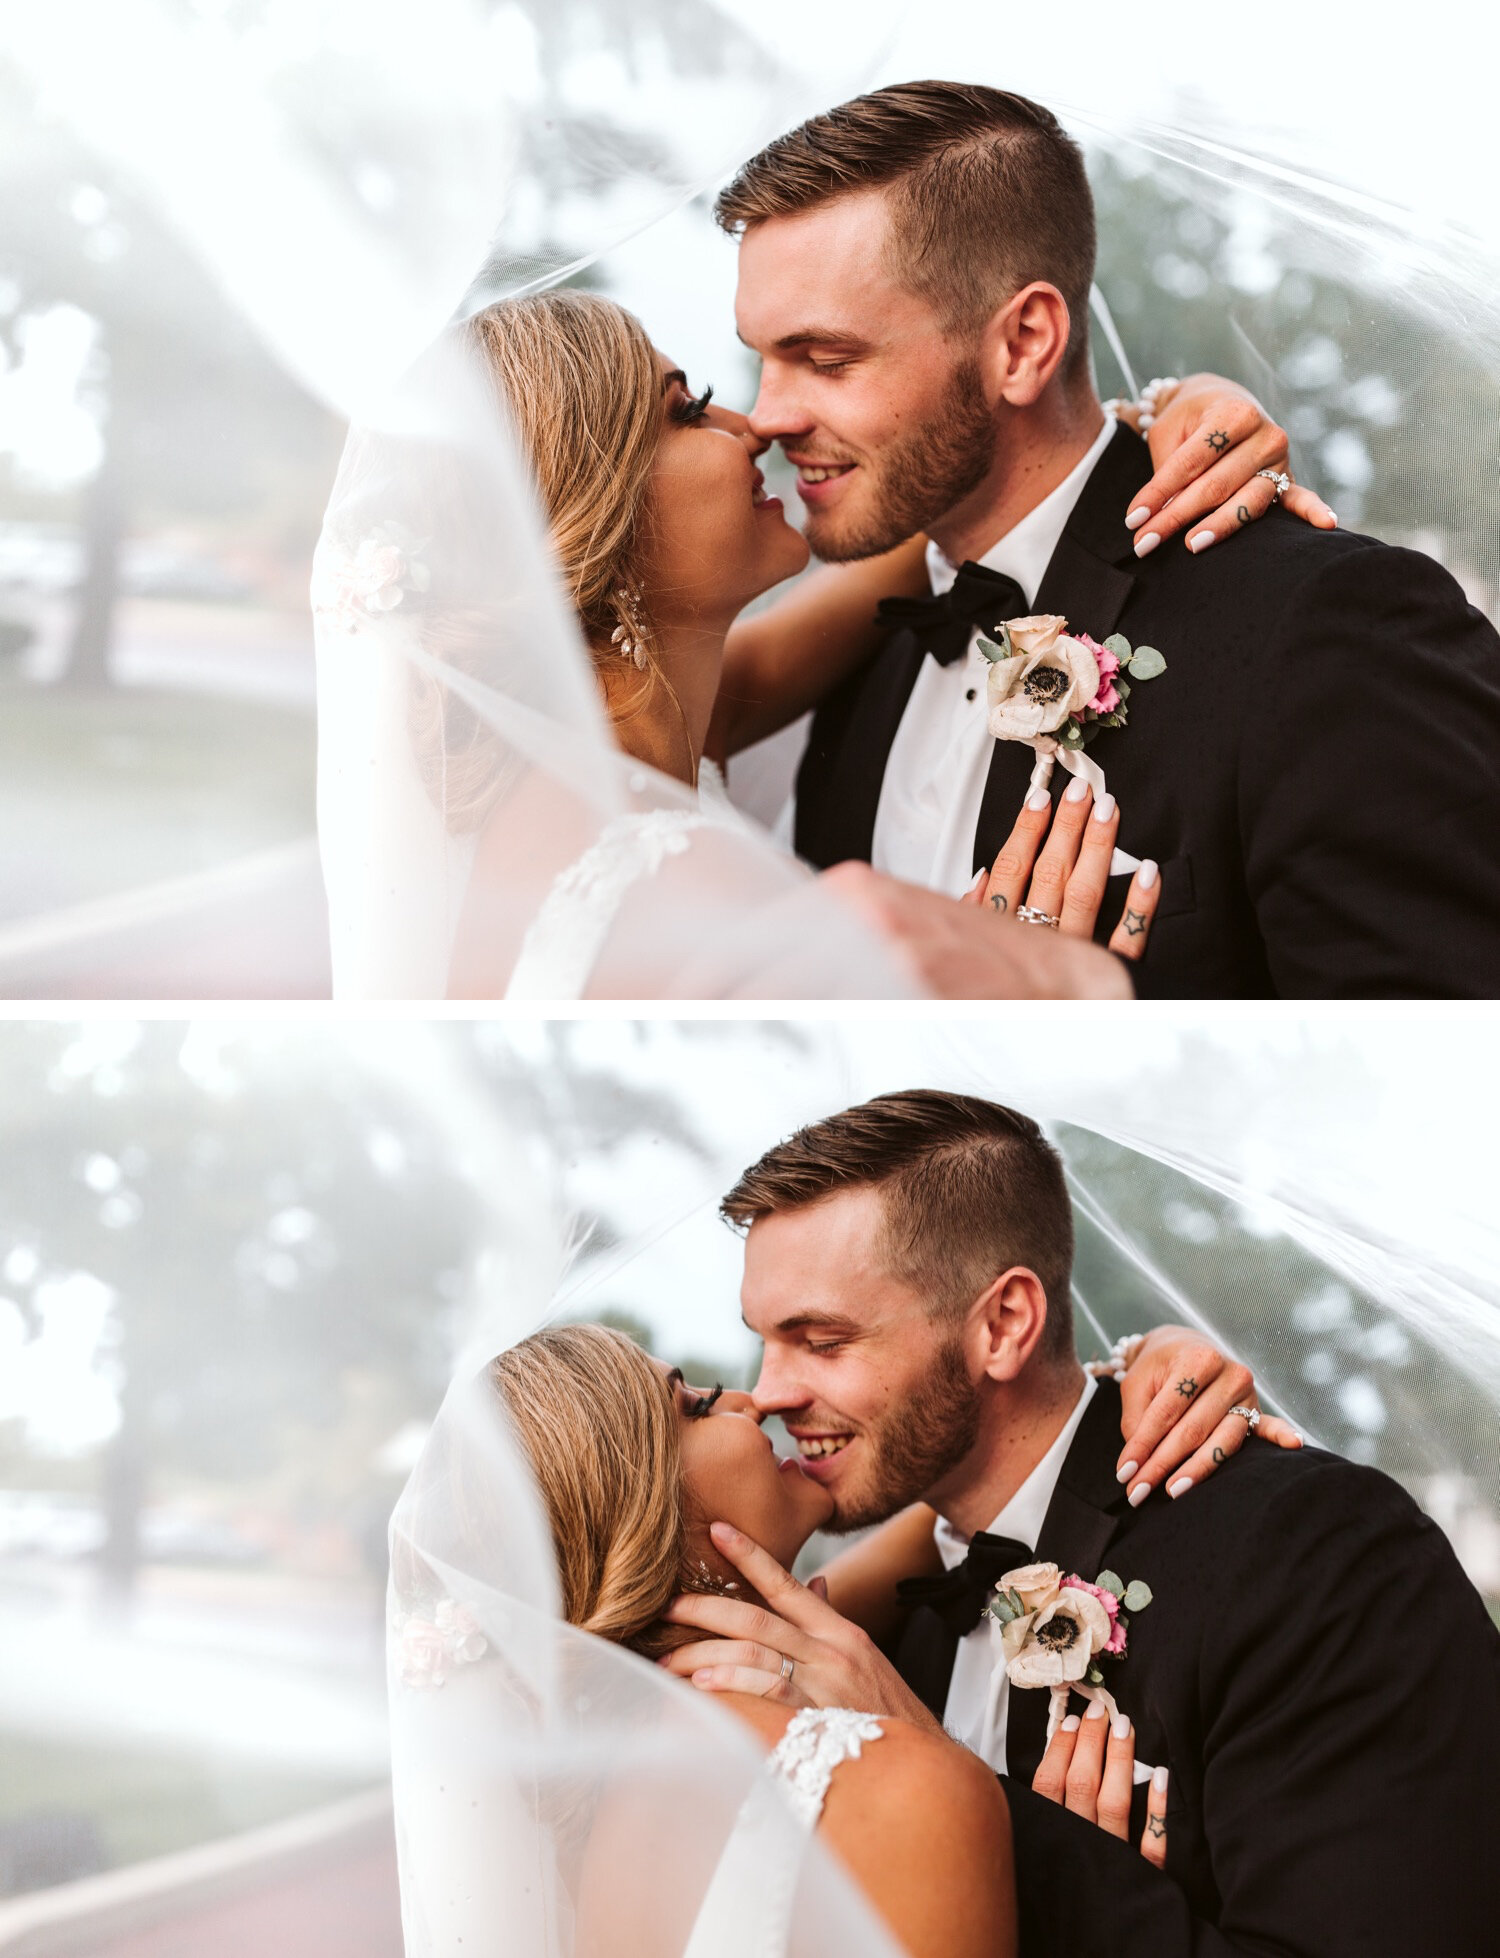 Groom and bride poses